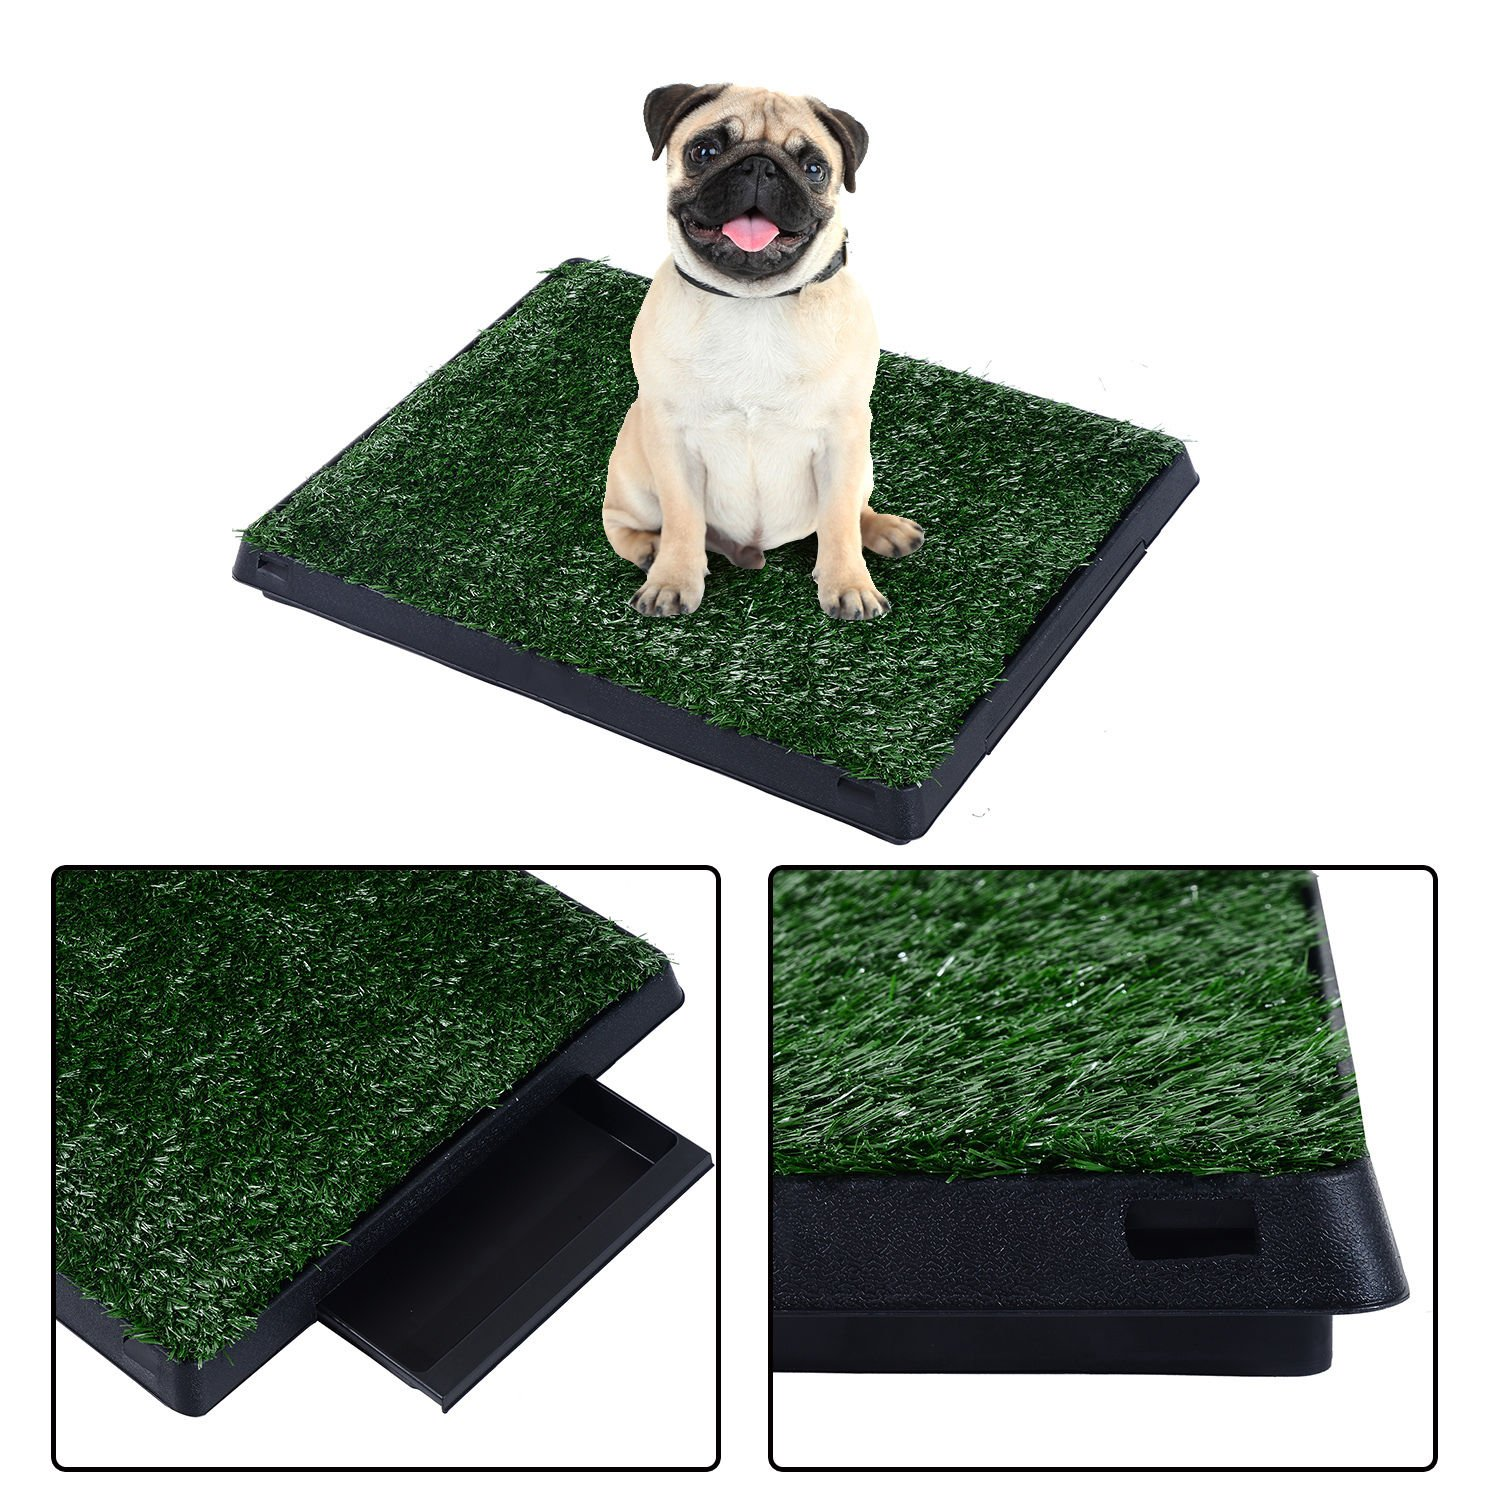 Pet Dog Toilet Mat Indoor Potty Tray Training Grass Box Pad Patch Litter Outdoor